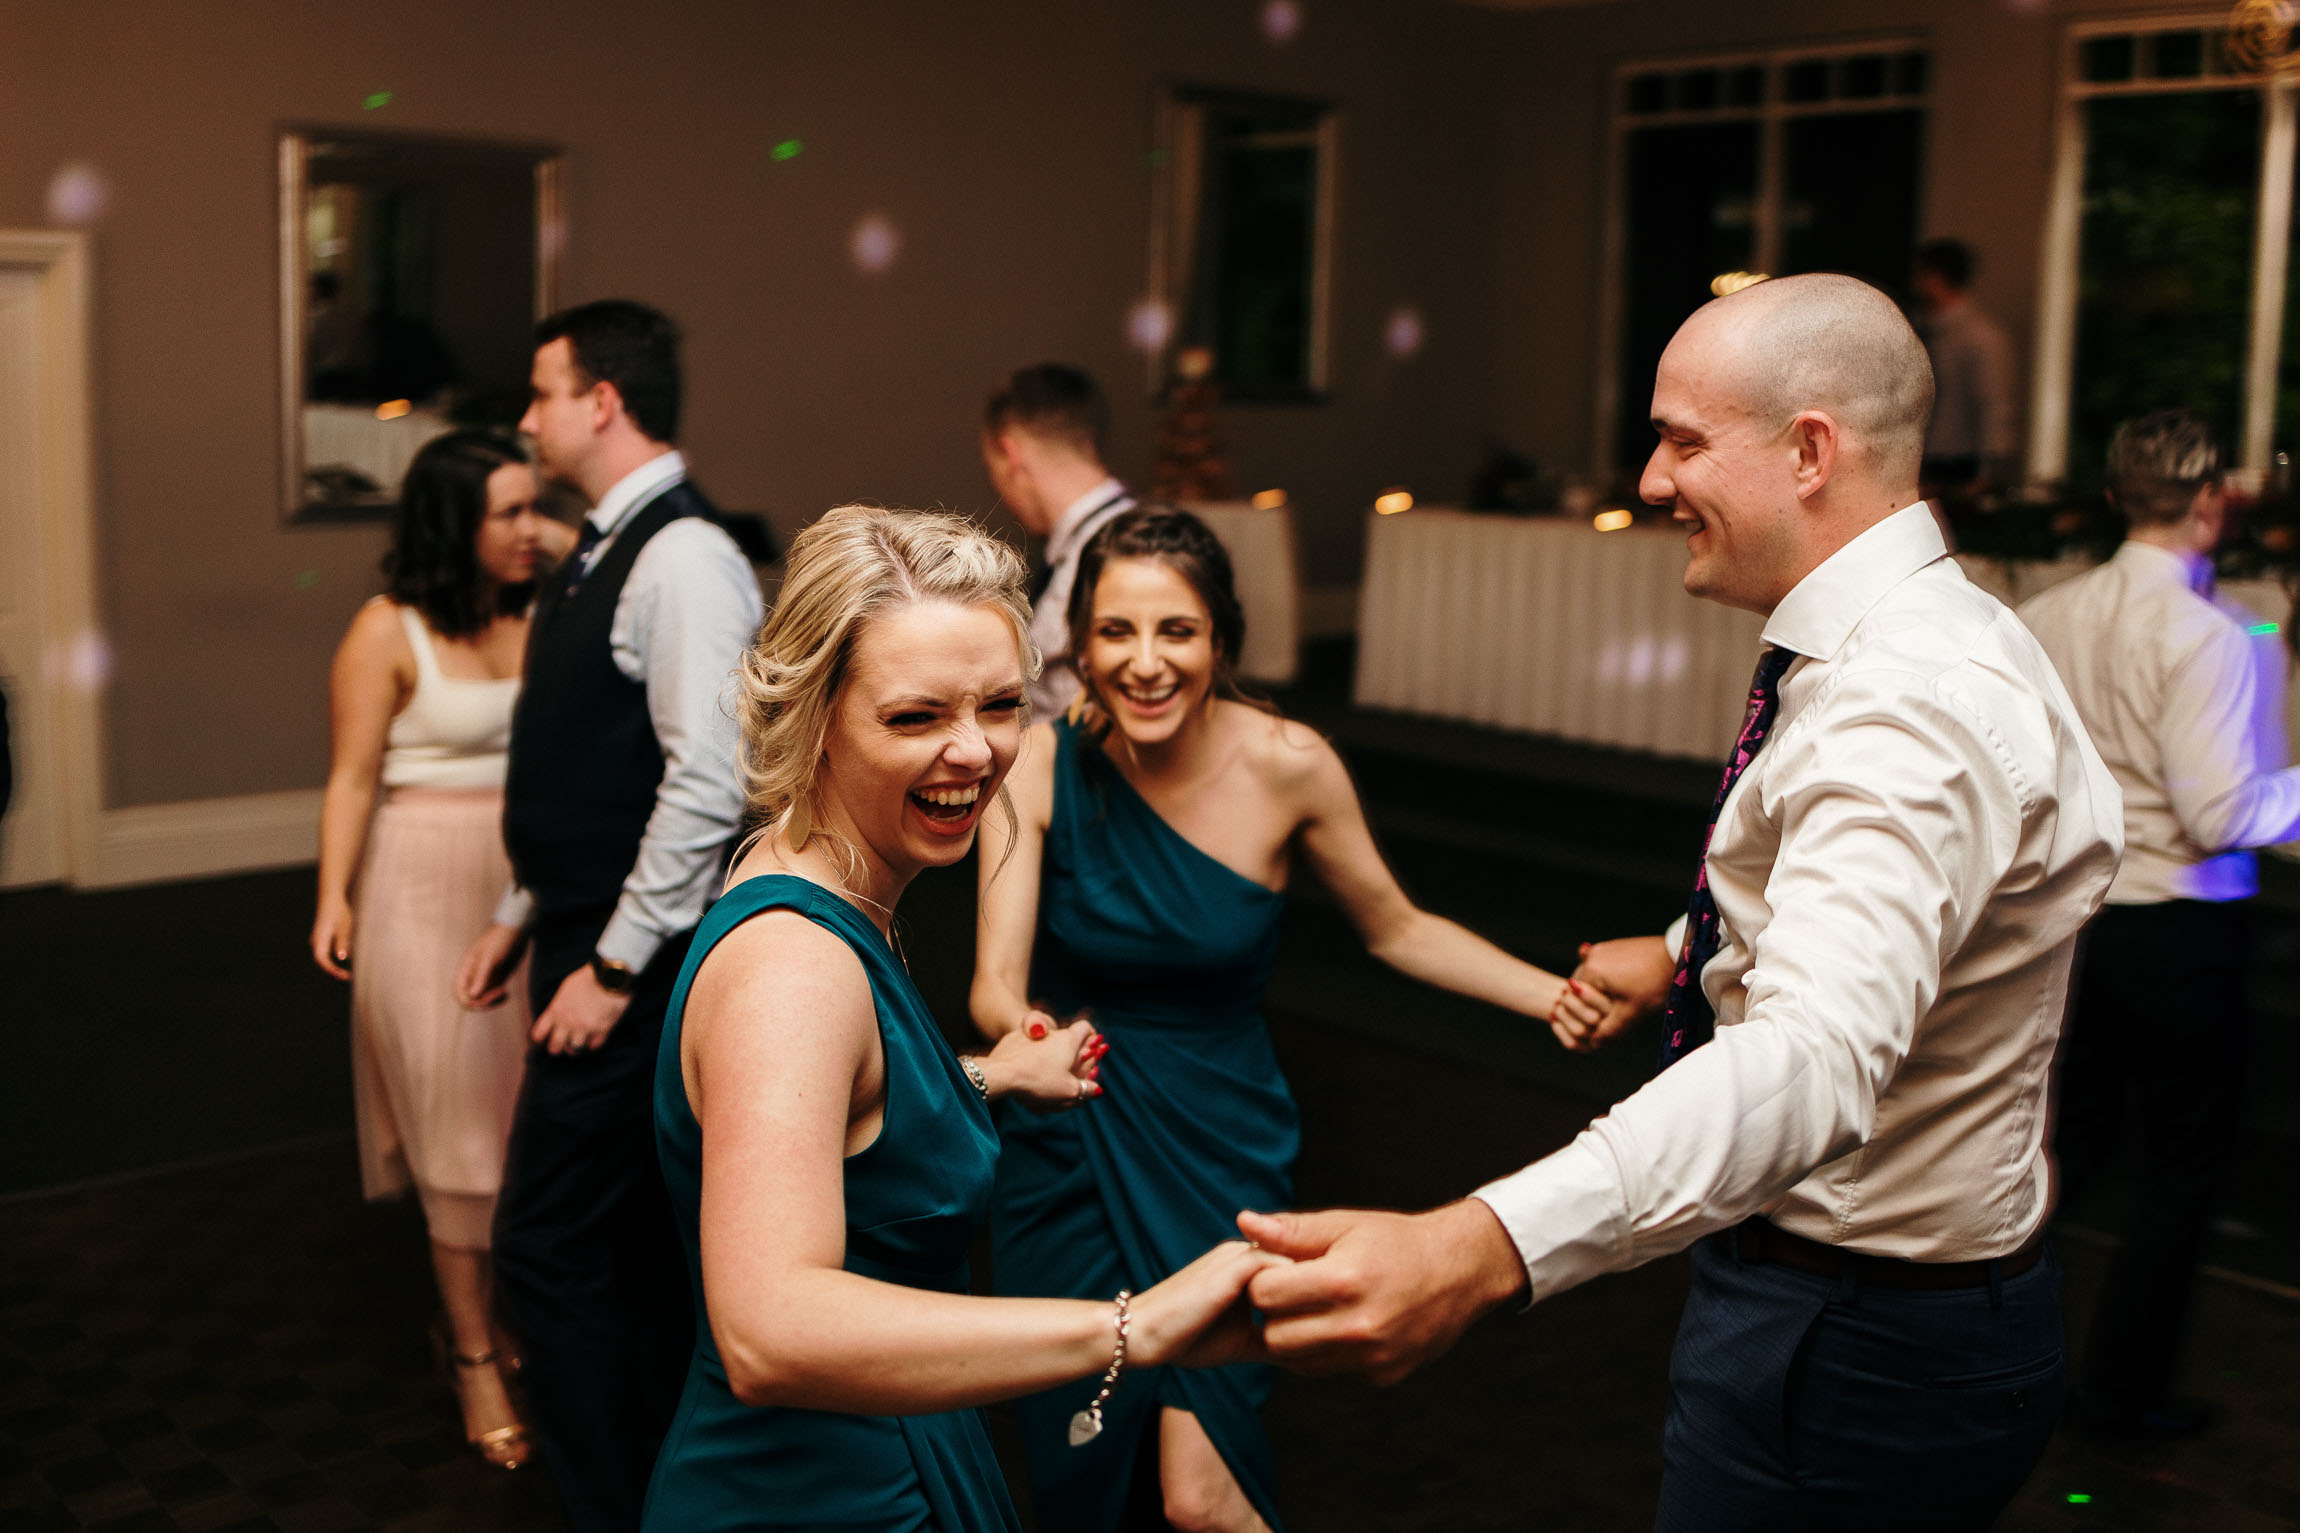 lachlan-scallion-melbourne-victoria-austrlia-mornington-peninsula-candid-relaxed-natural-chilled-wedding-photography-kathryn-tom-660.jpg